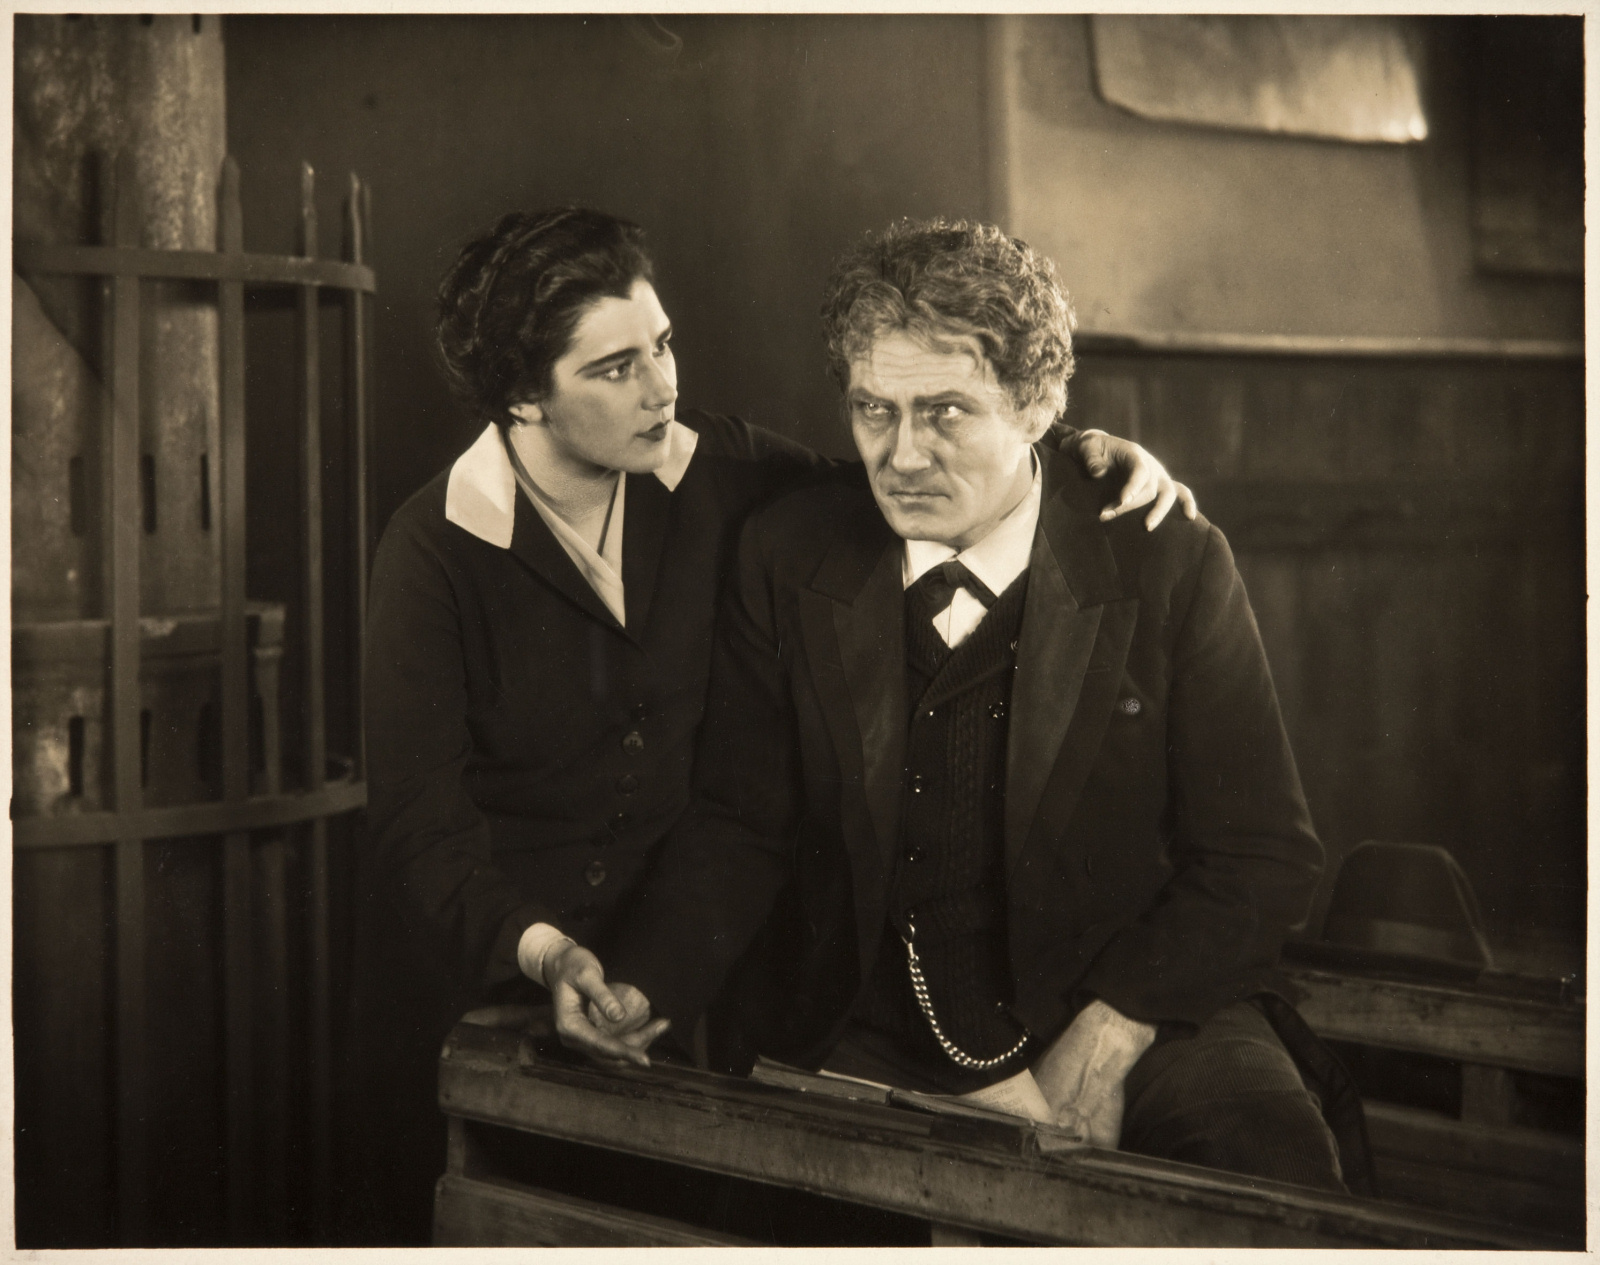 Nita Naldi and Bernhard Goetzke in The Mountain Eagle (1926, dir. Alfred Hitchcock)